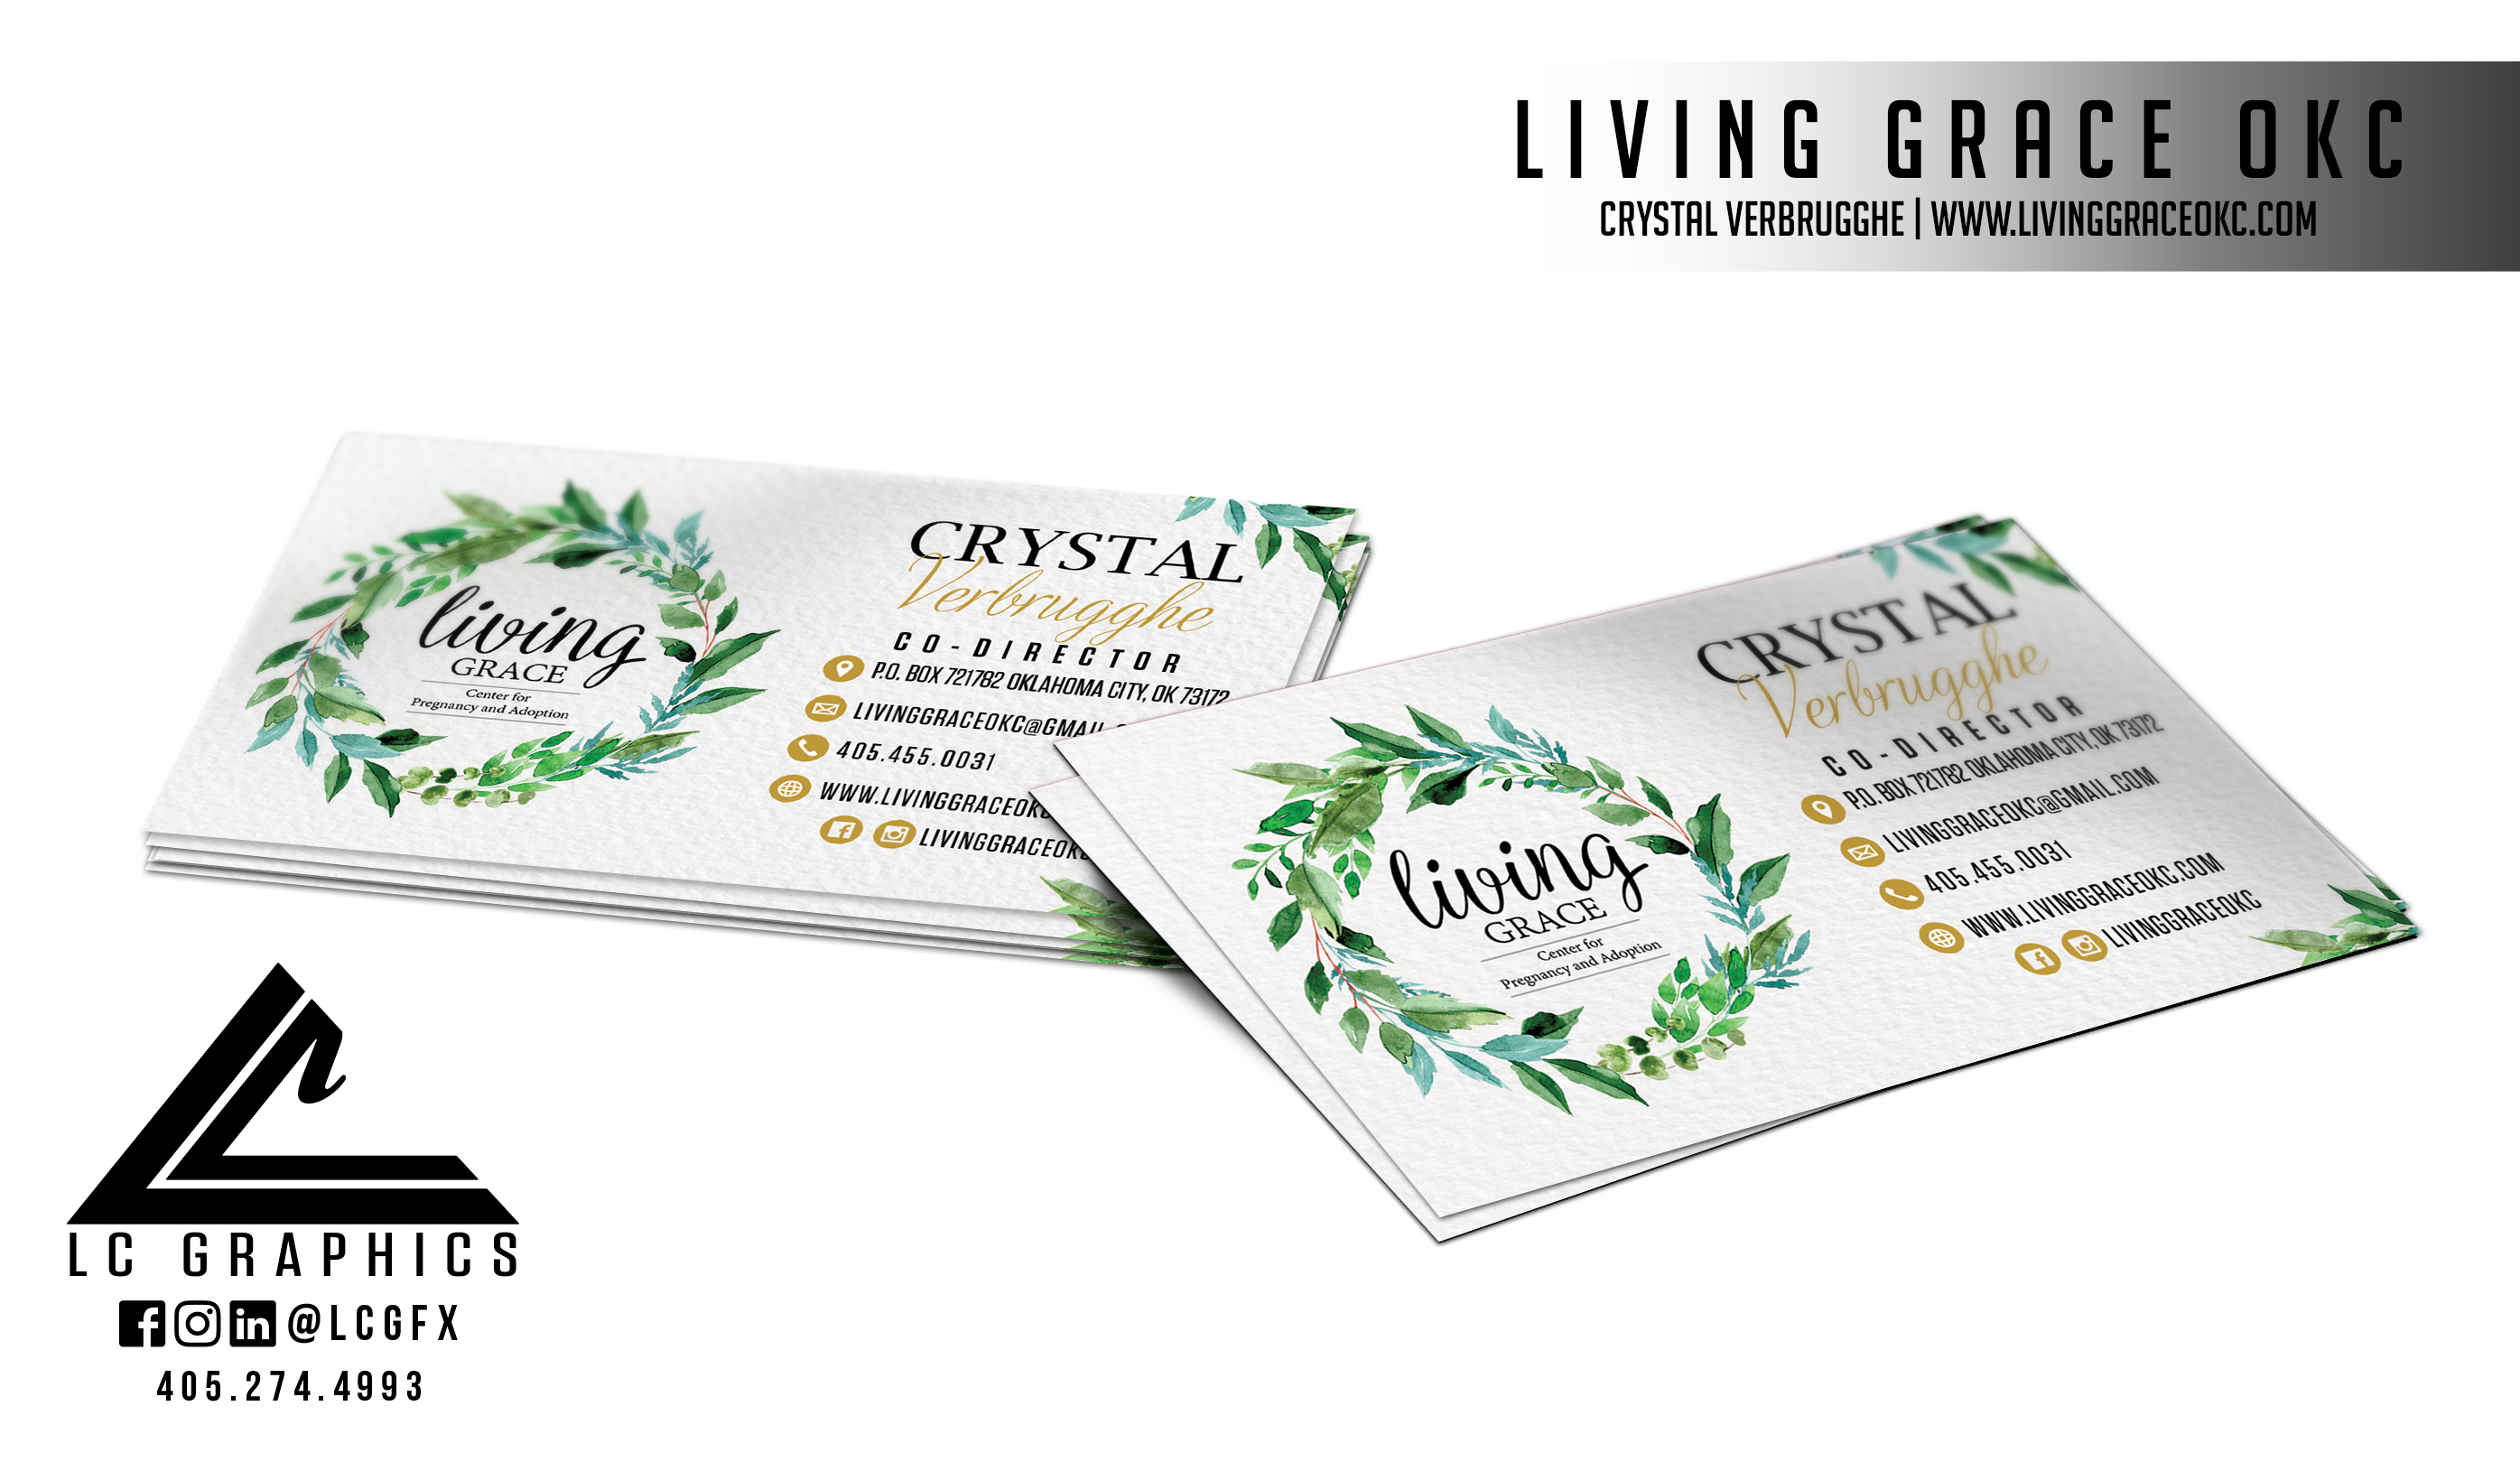 Living Grace OKC Business Cards Mockup